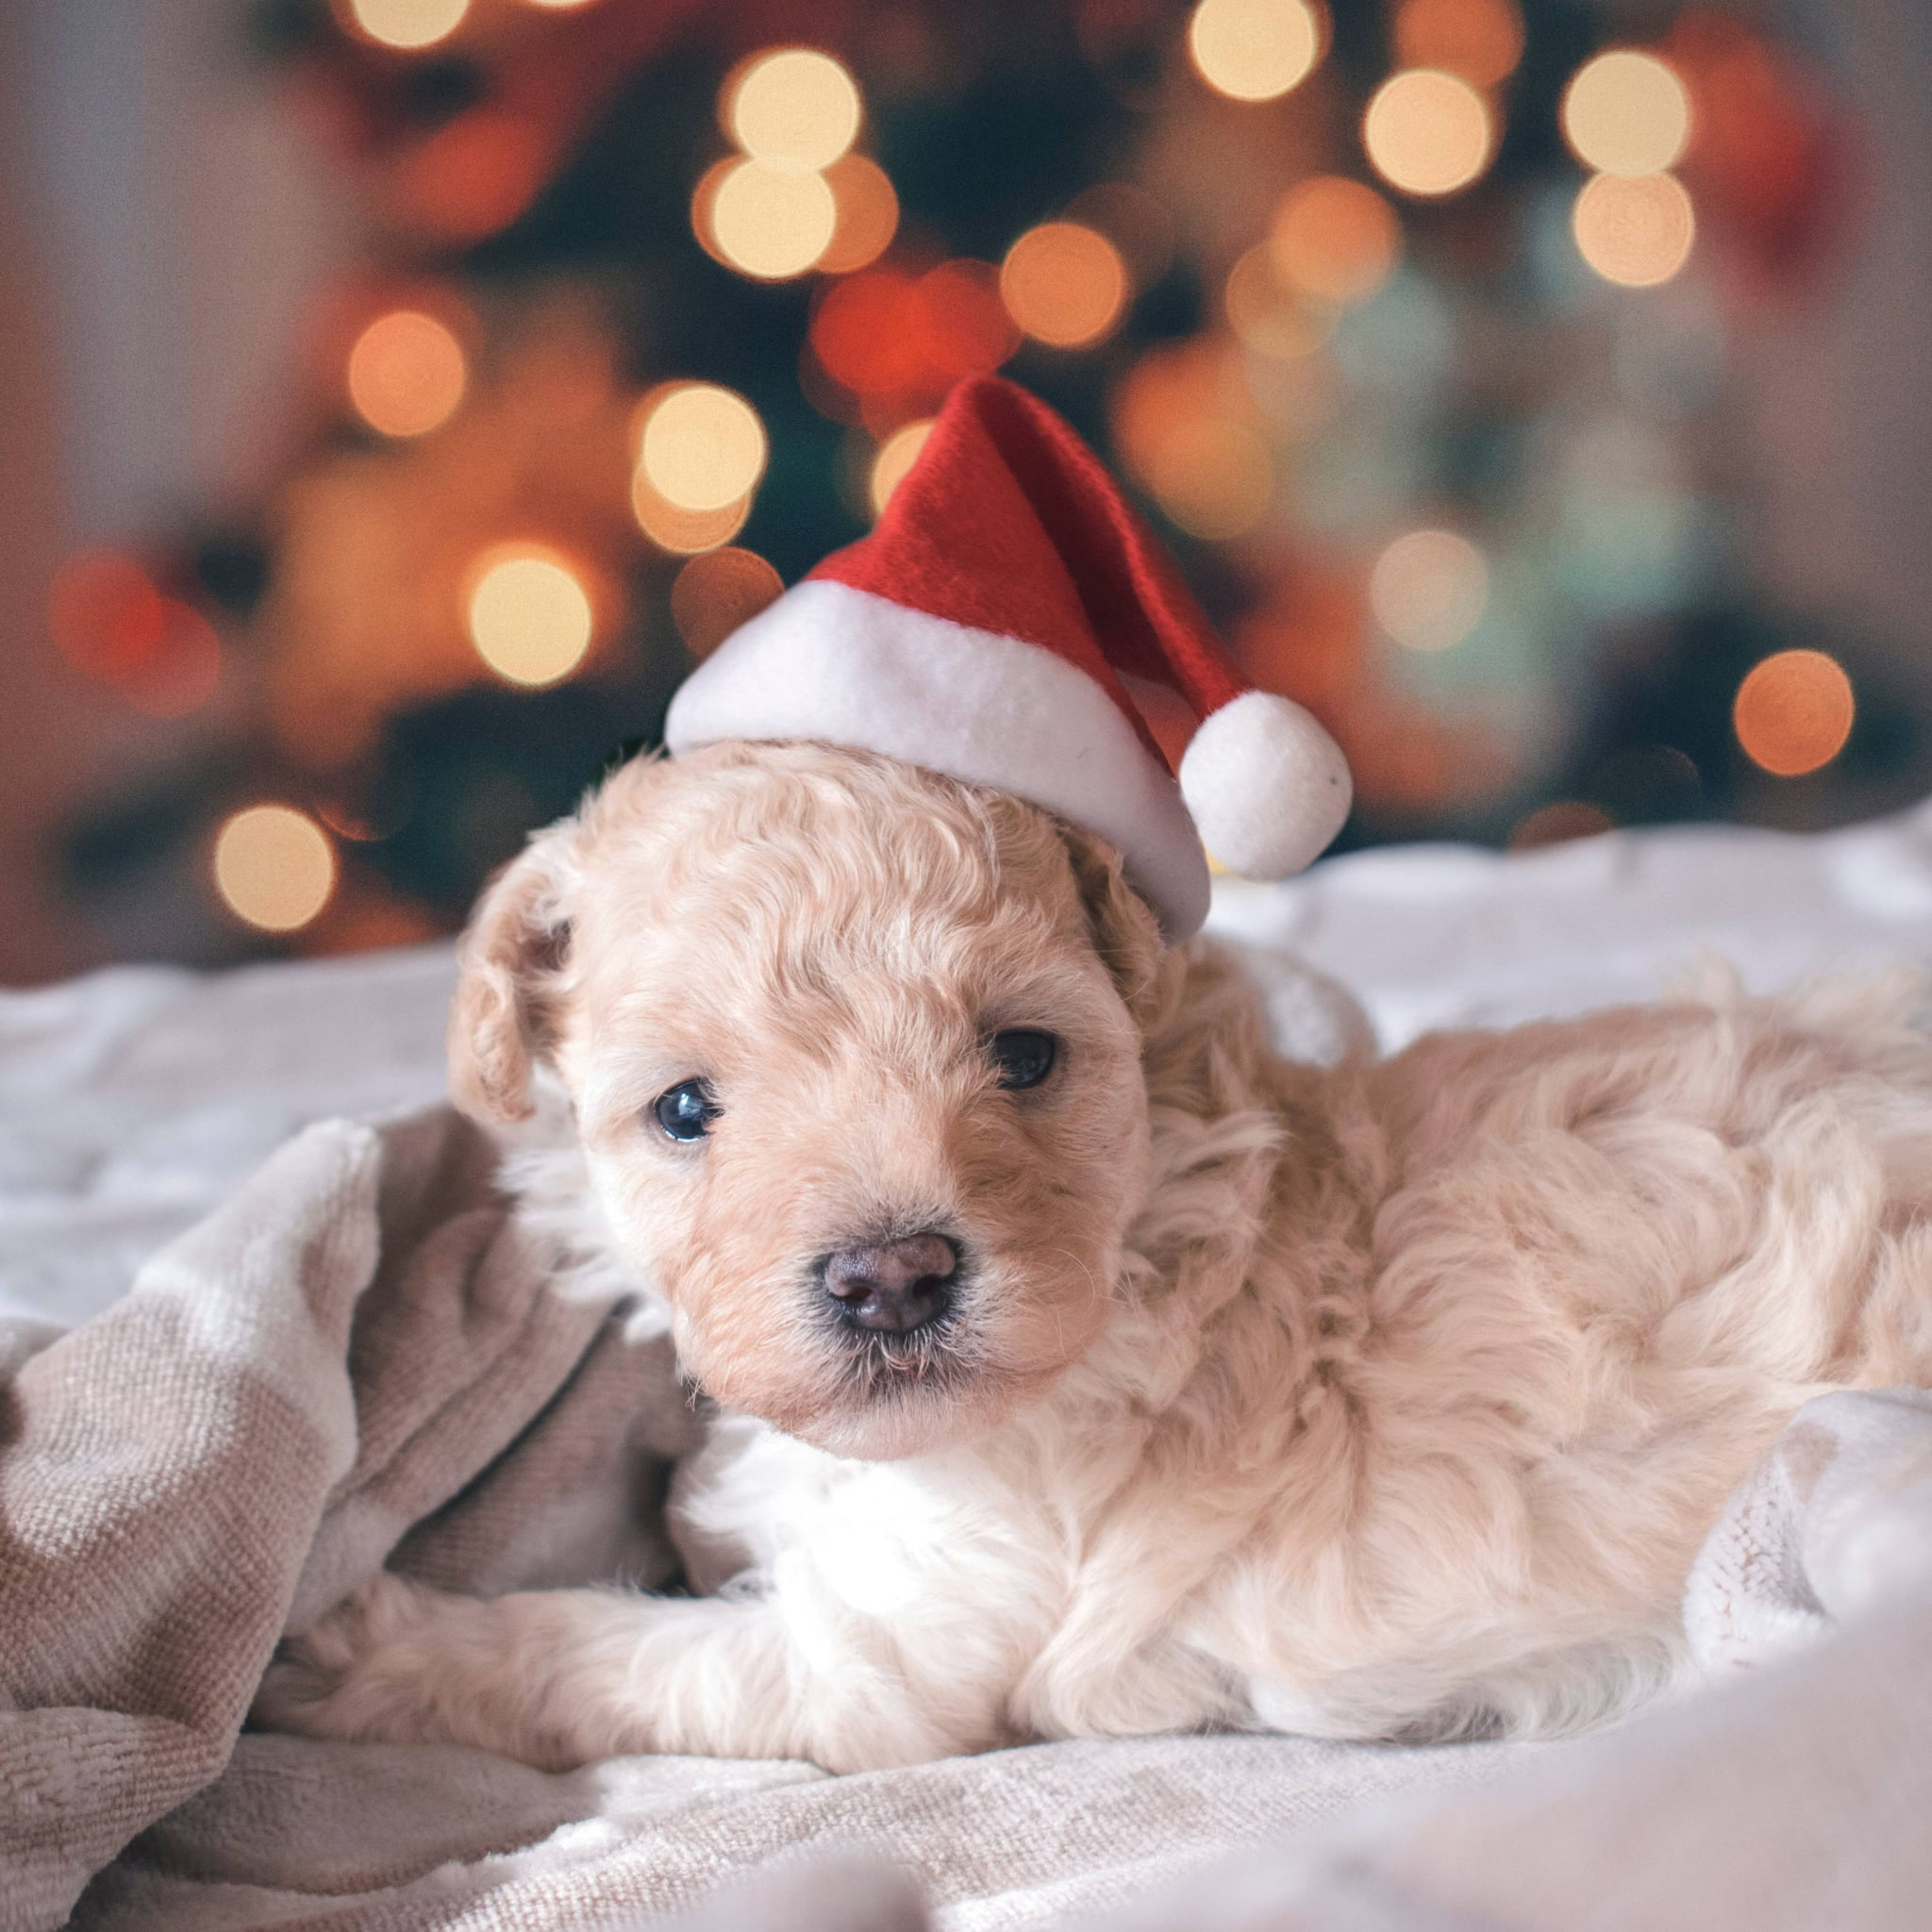 Cute Christmas Puppies.Cute Pictures Of Christmas Puppies Popsugar Family